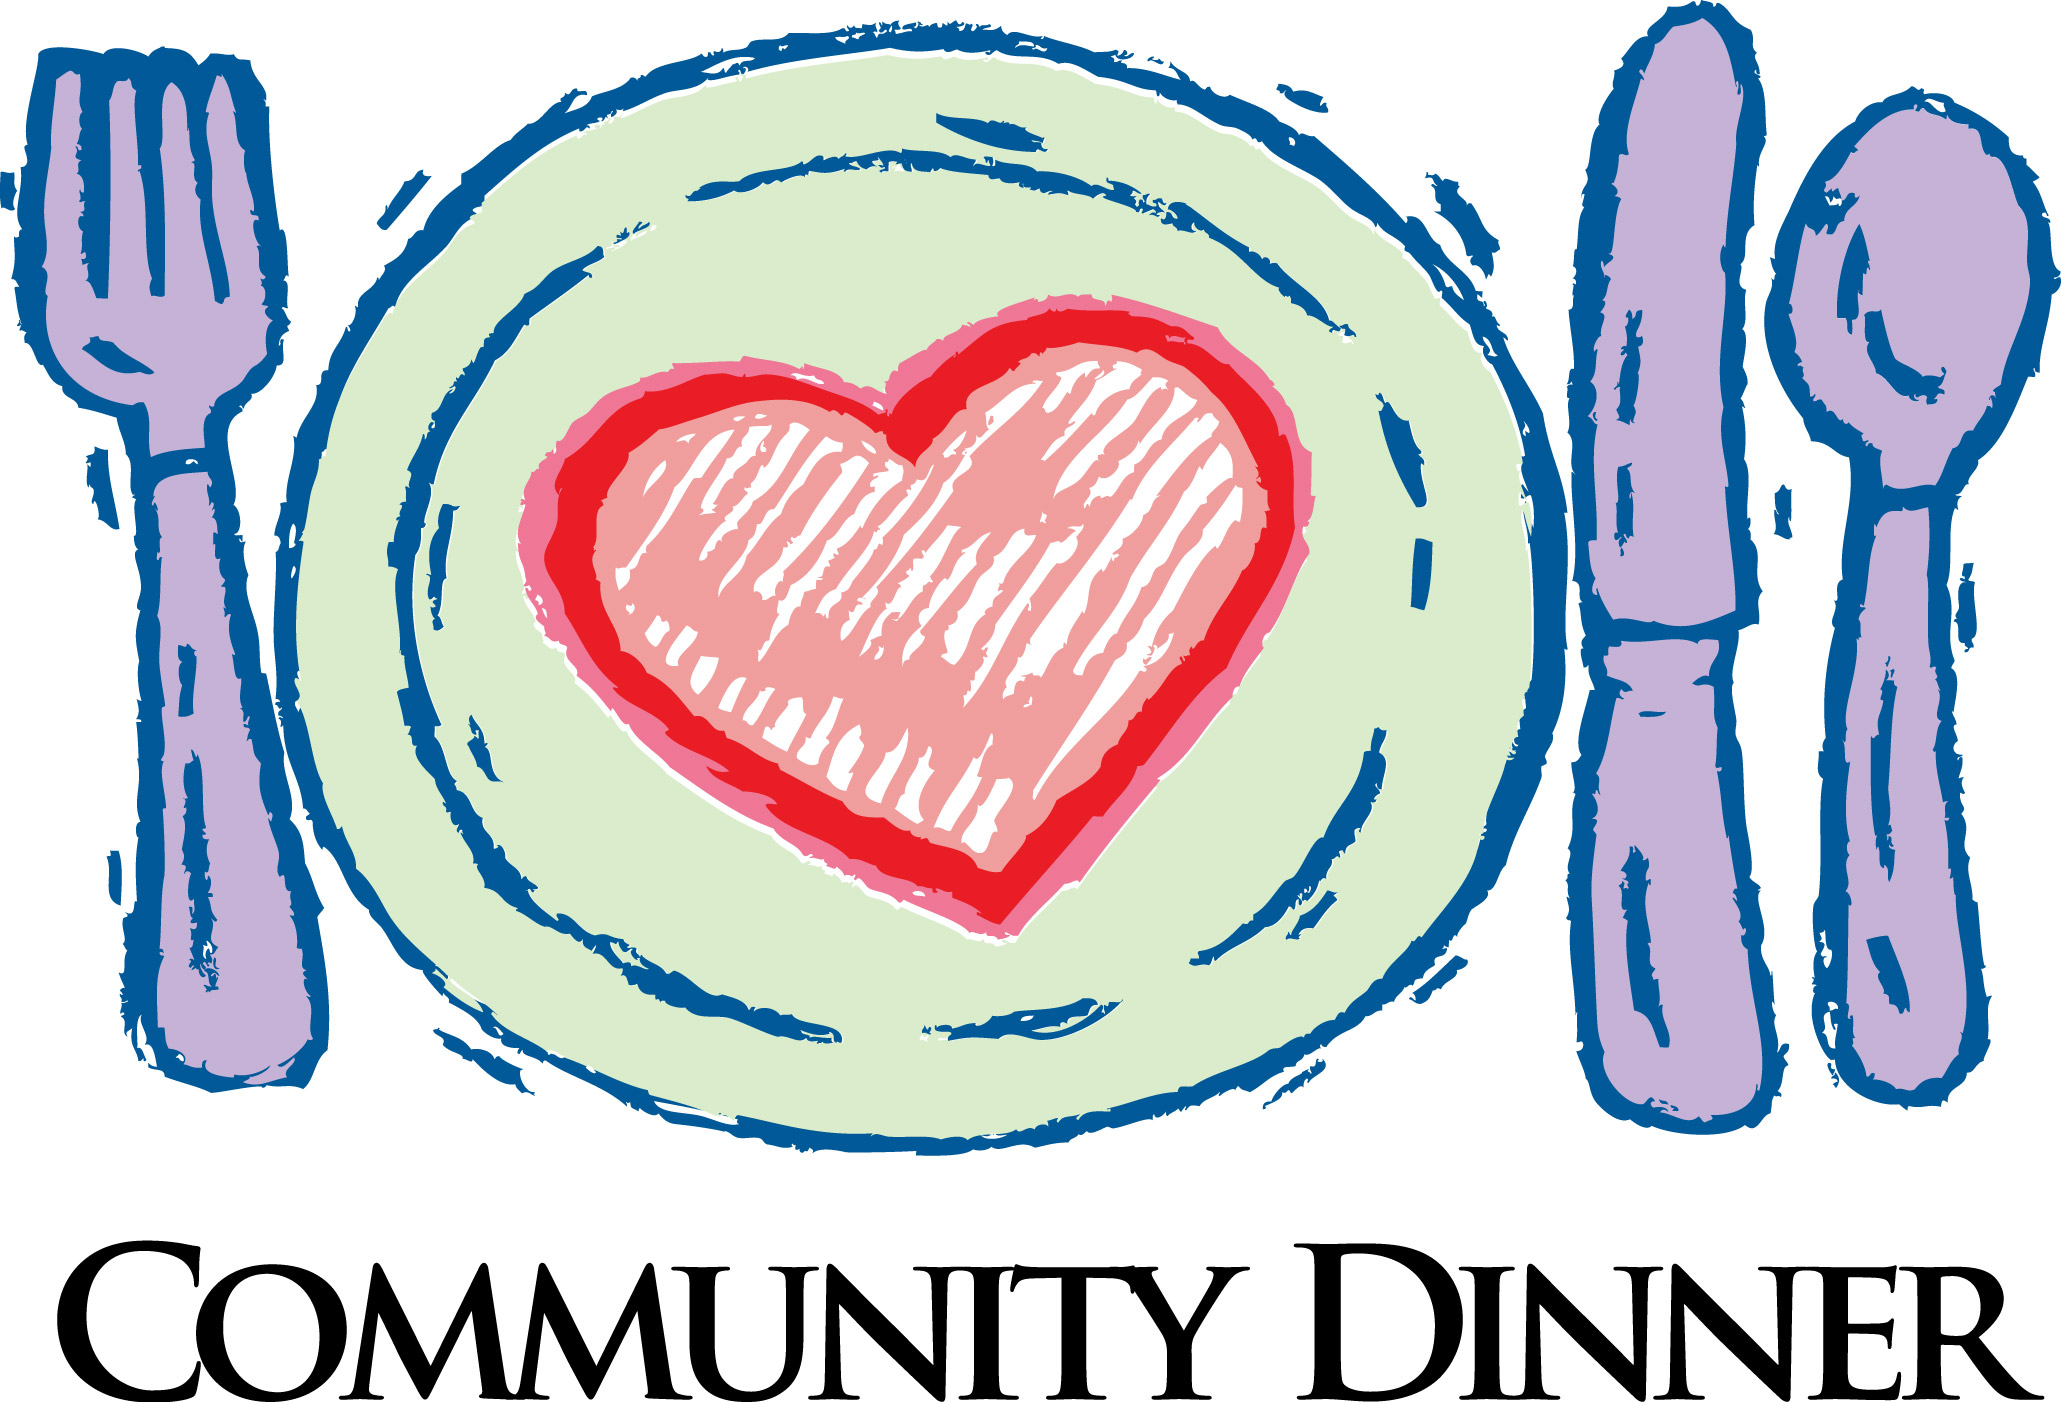 Luncheon clipart community. Events calvary foursquare church